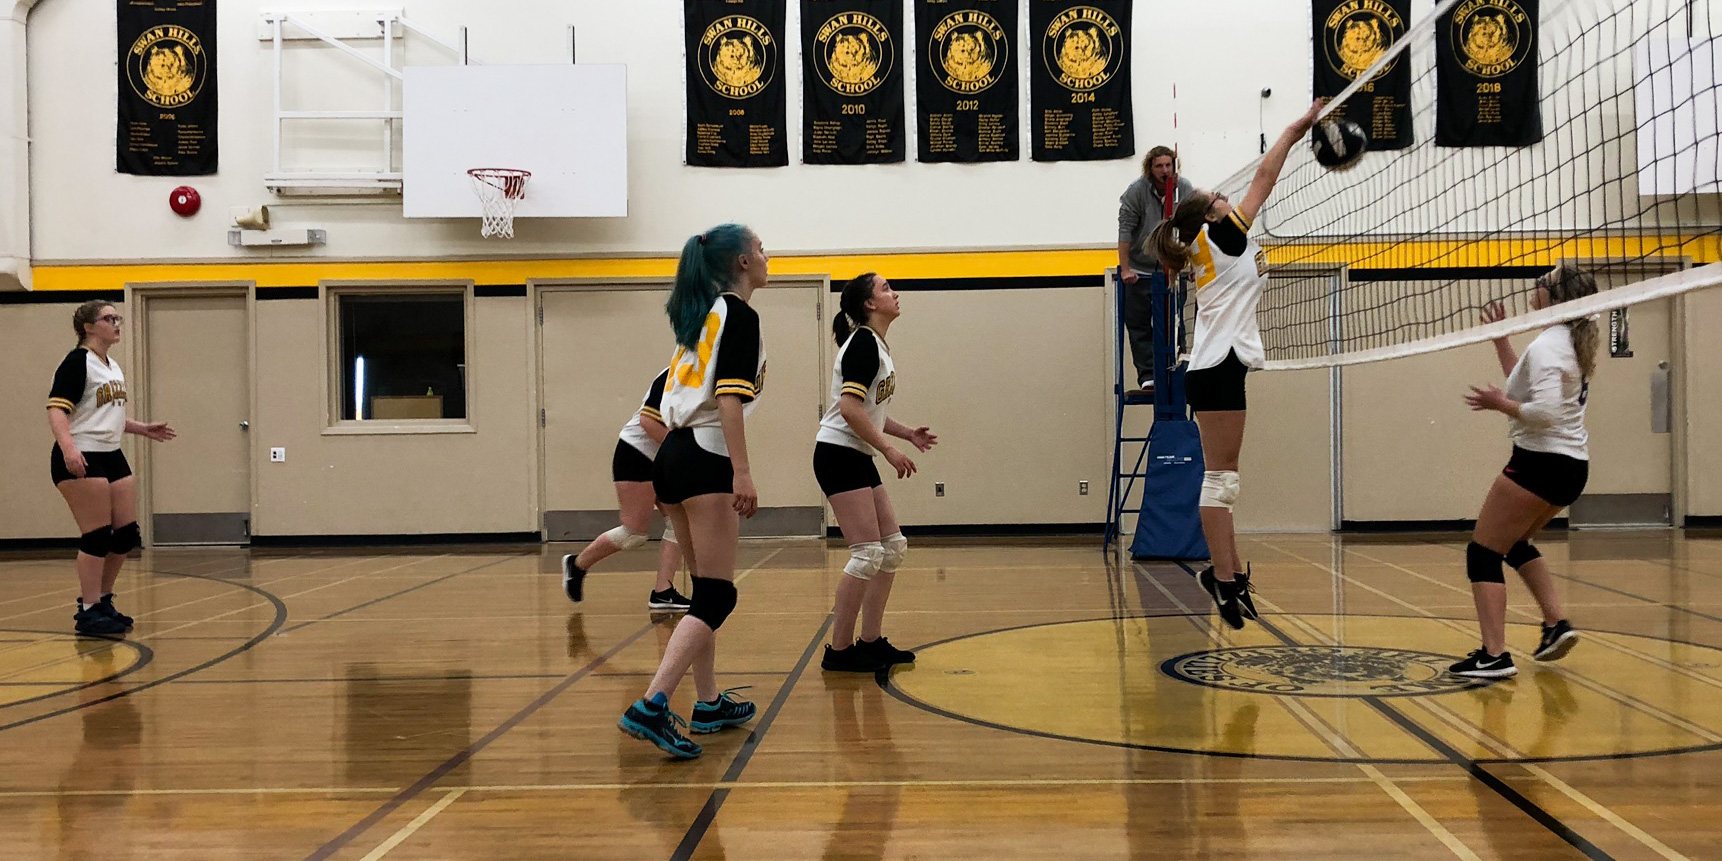 Senior Girls Volleyball vs Fox Creek – check out the Photo Galleries for a slideshow